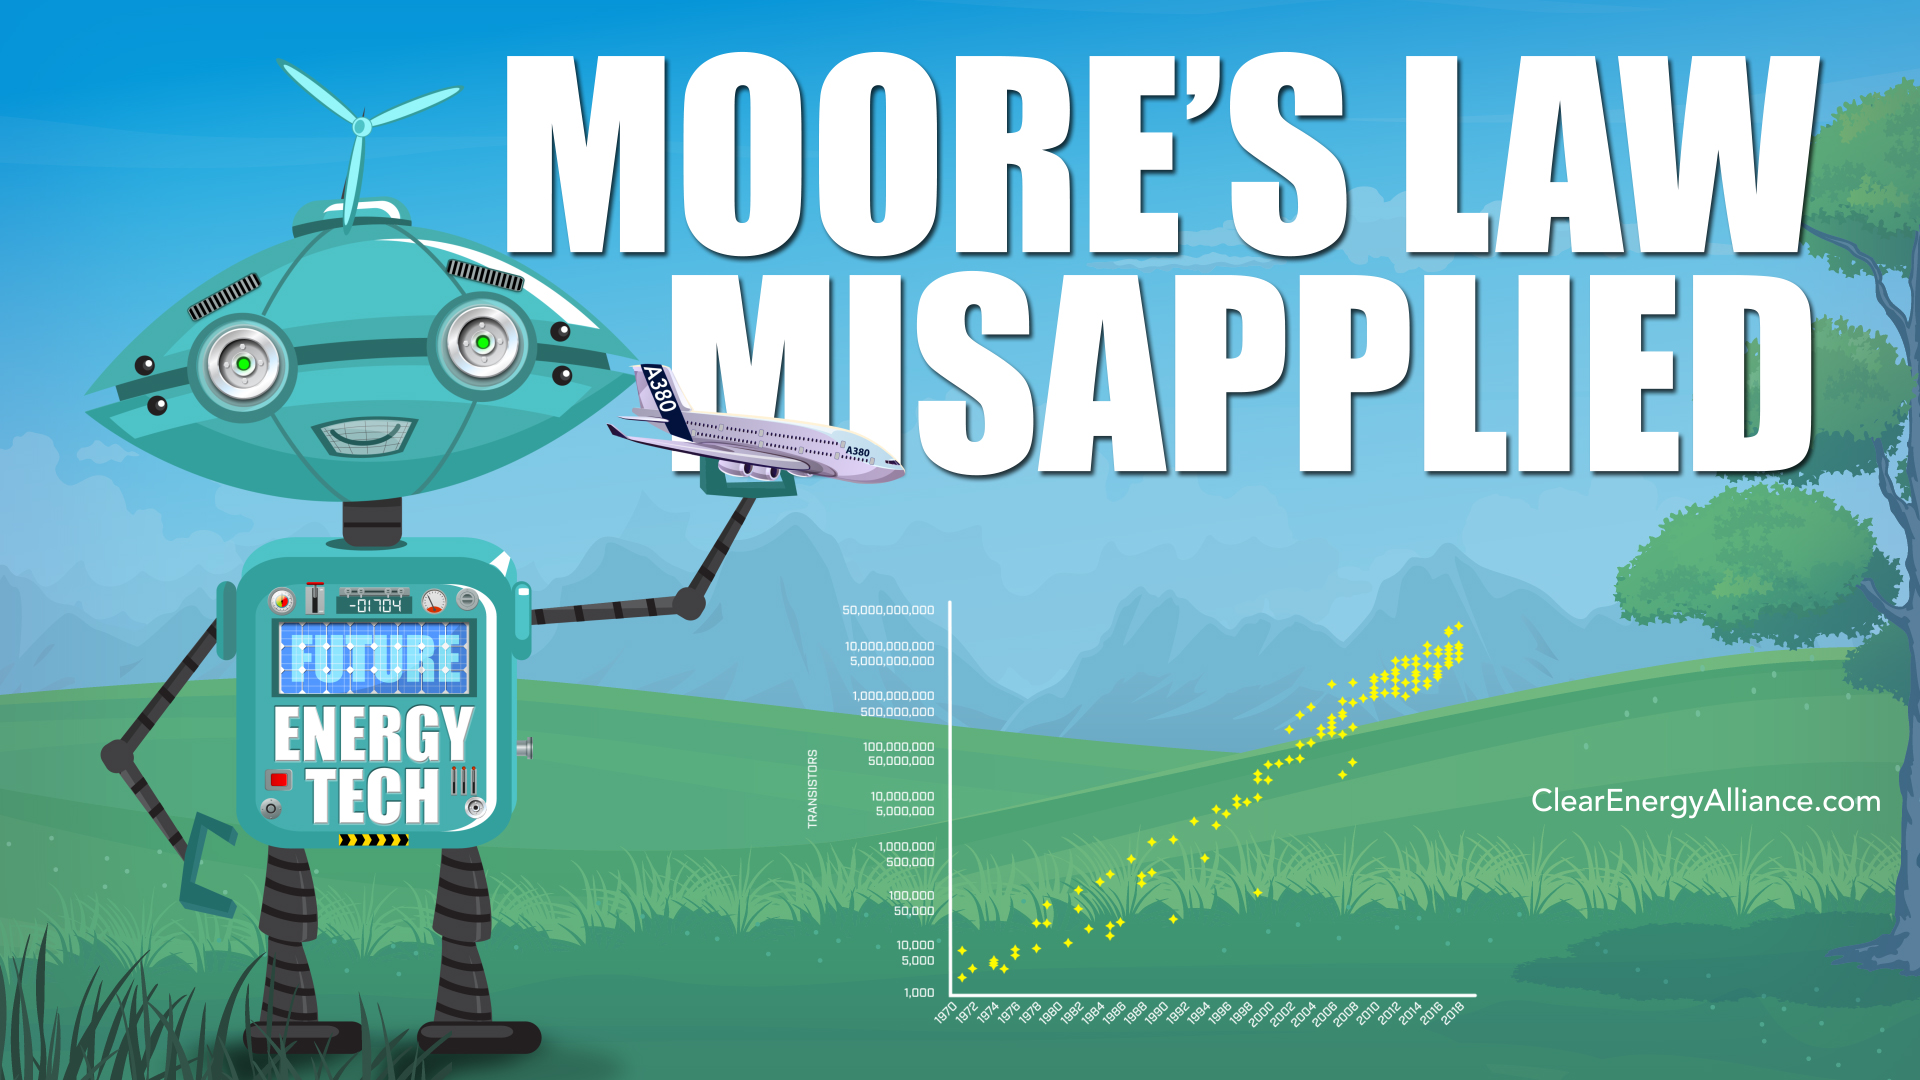 Moore's Law Misapplied